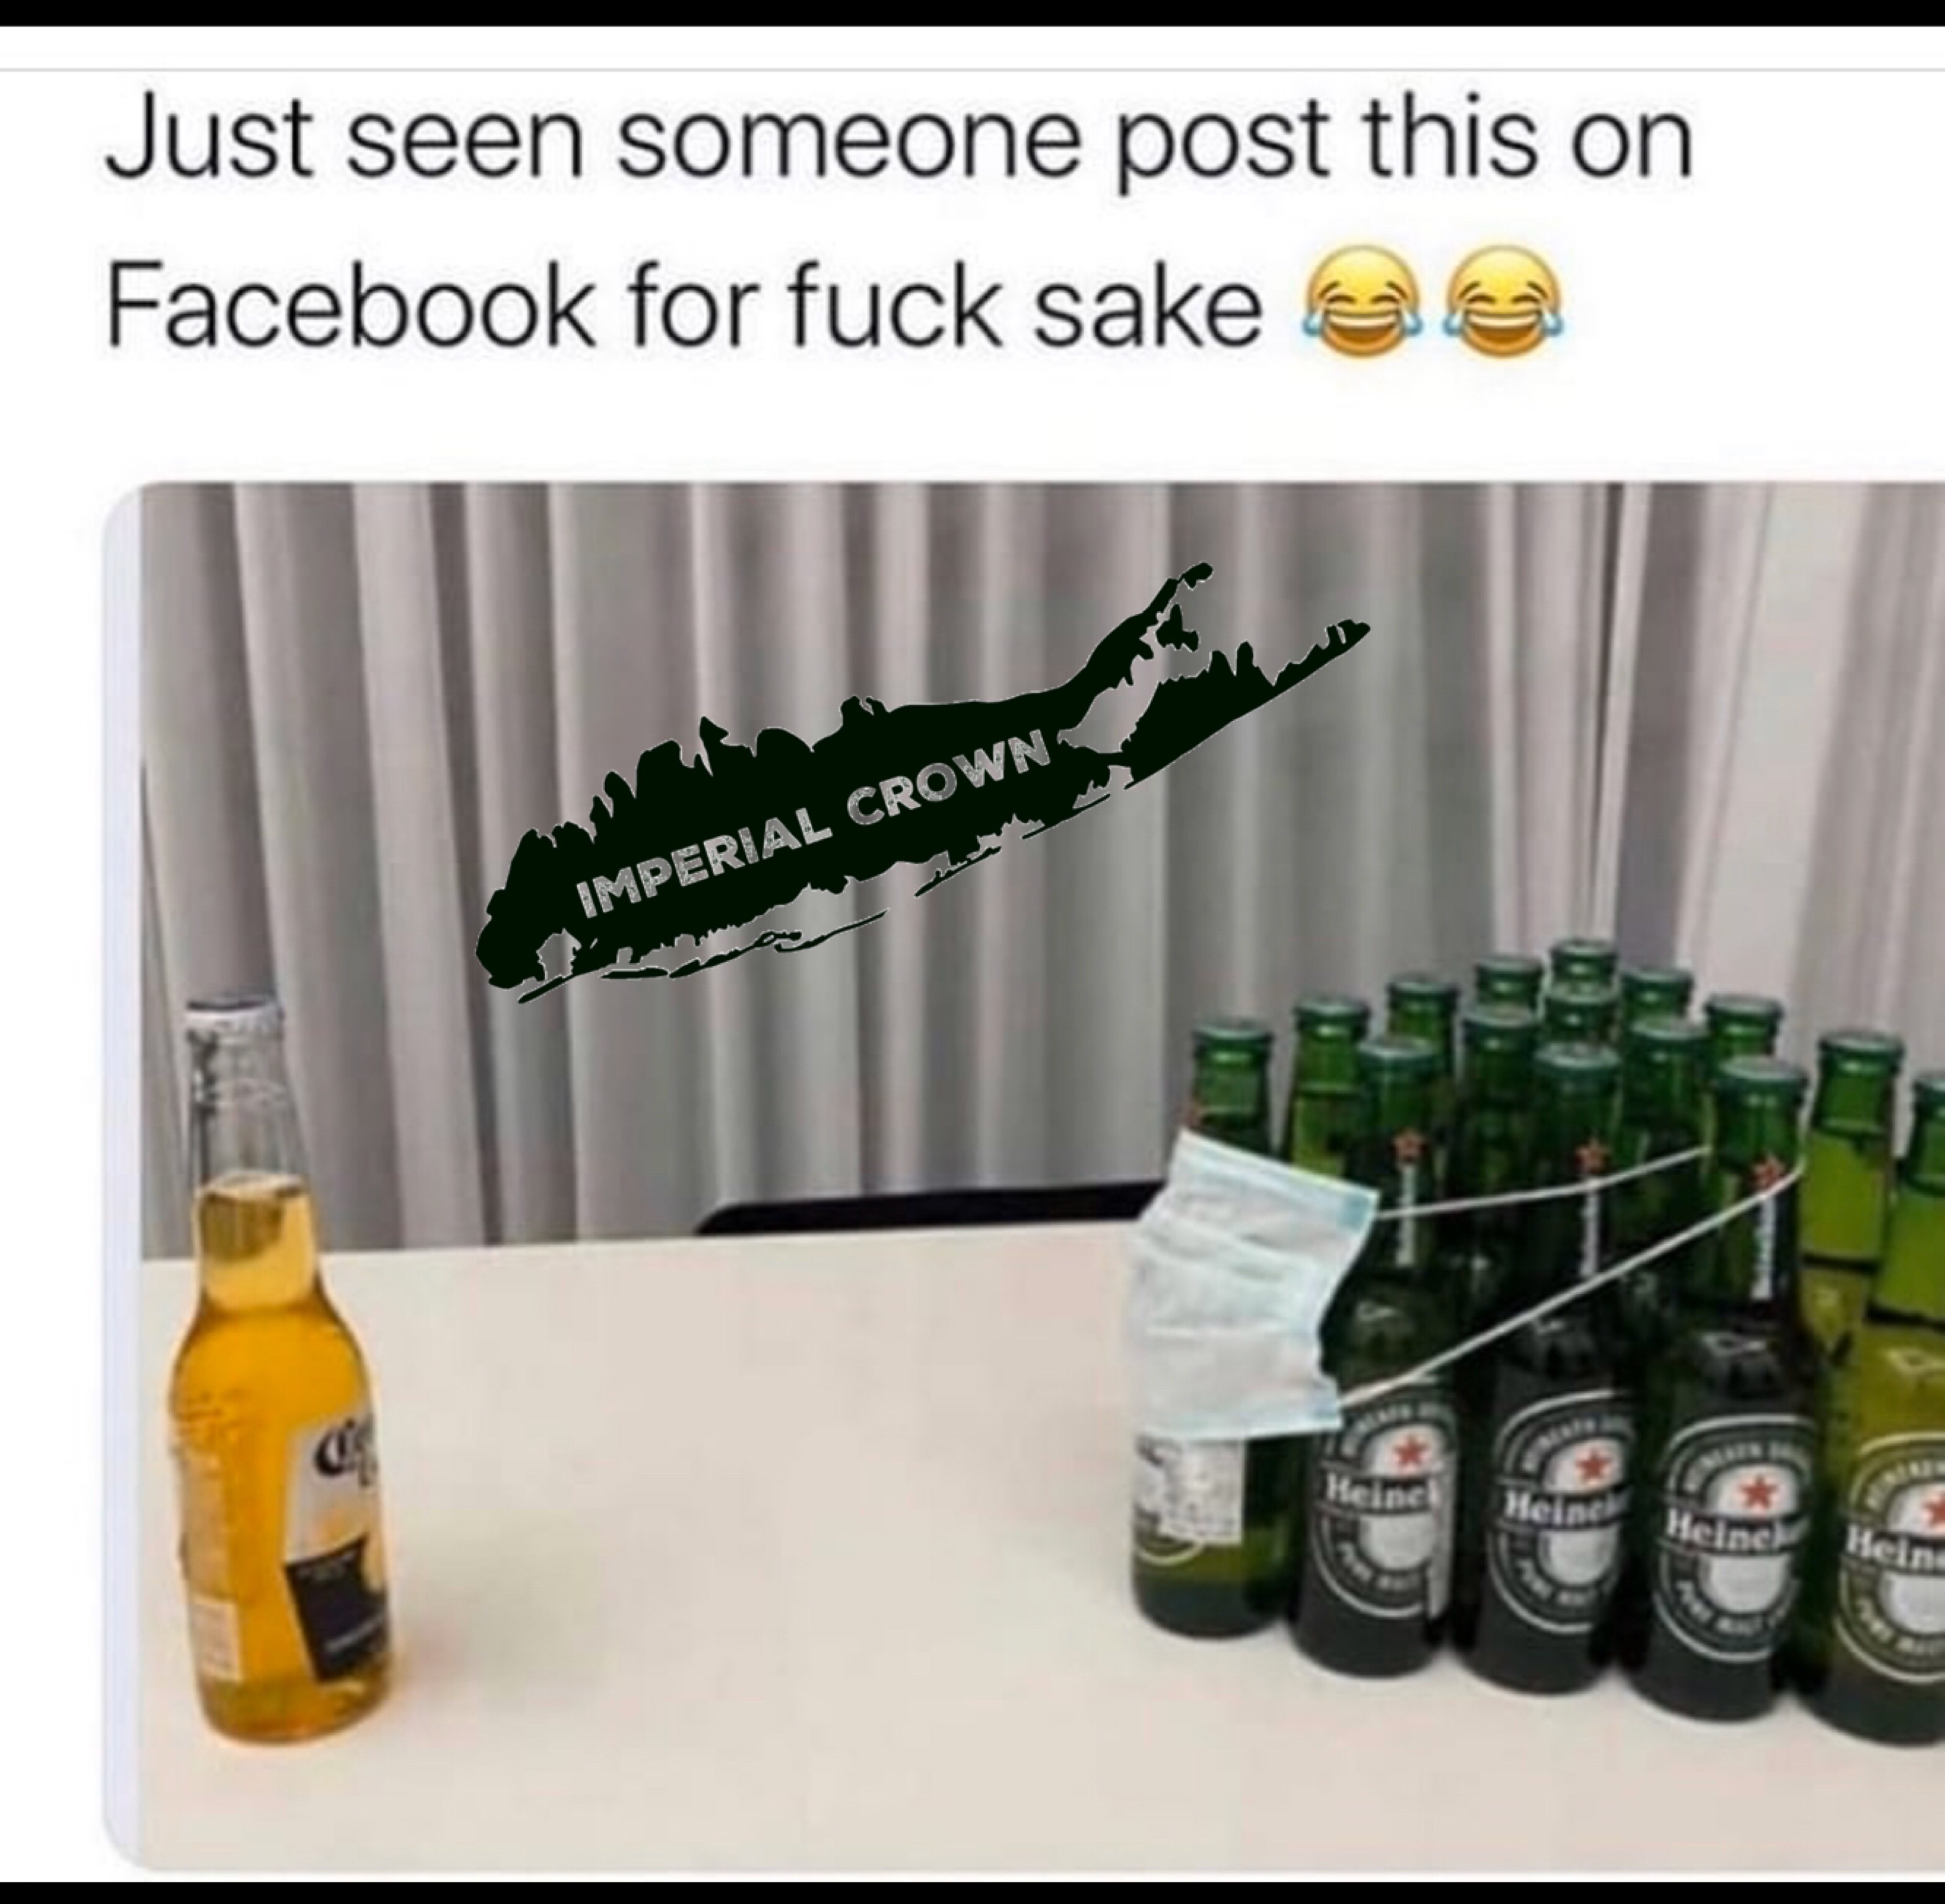 Just seen someone post this on Facebook for fuck sake